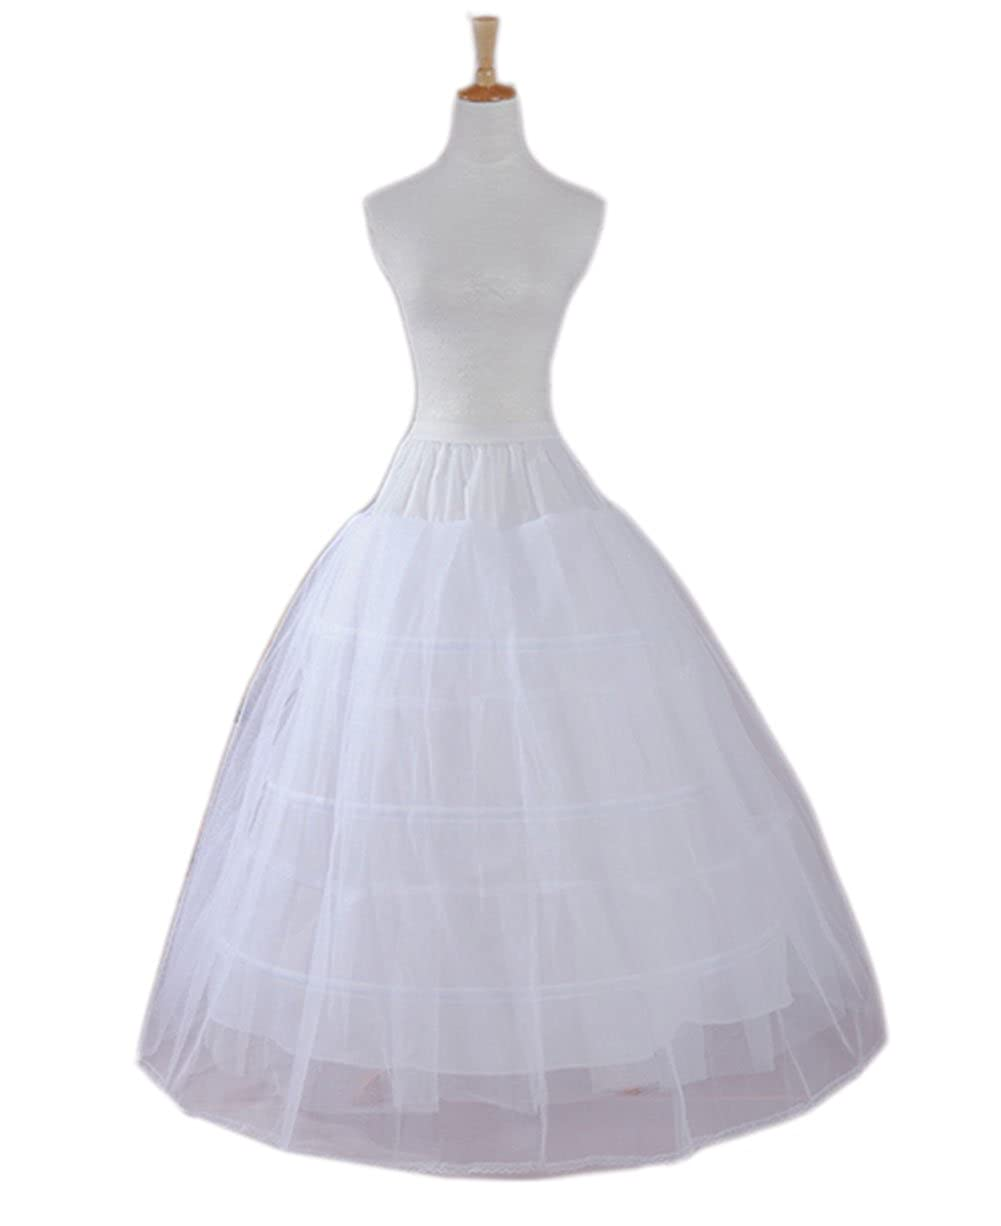 Ikerenwedding A-line 3 Hoop Floor-Length Bridal Dress Wedding Gown Slip Petticoat PT007